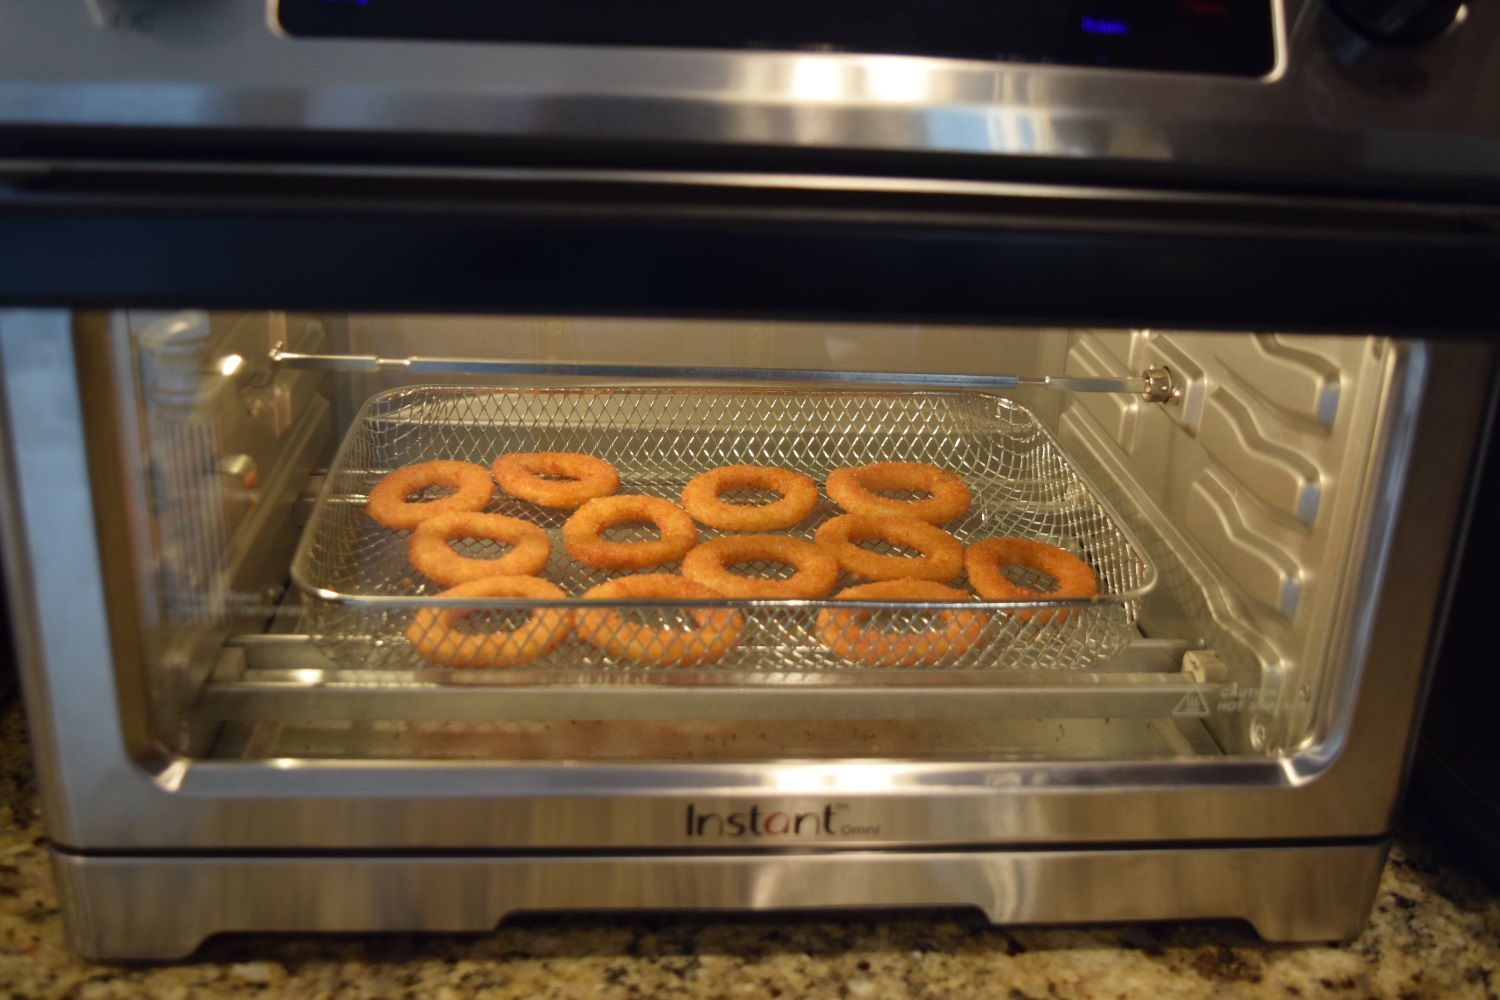 Instant Pot Omni onion rings